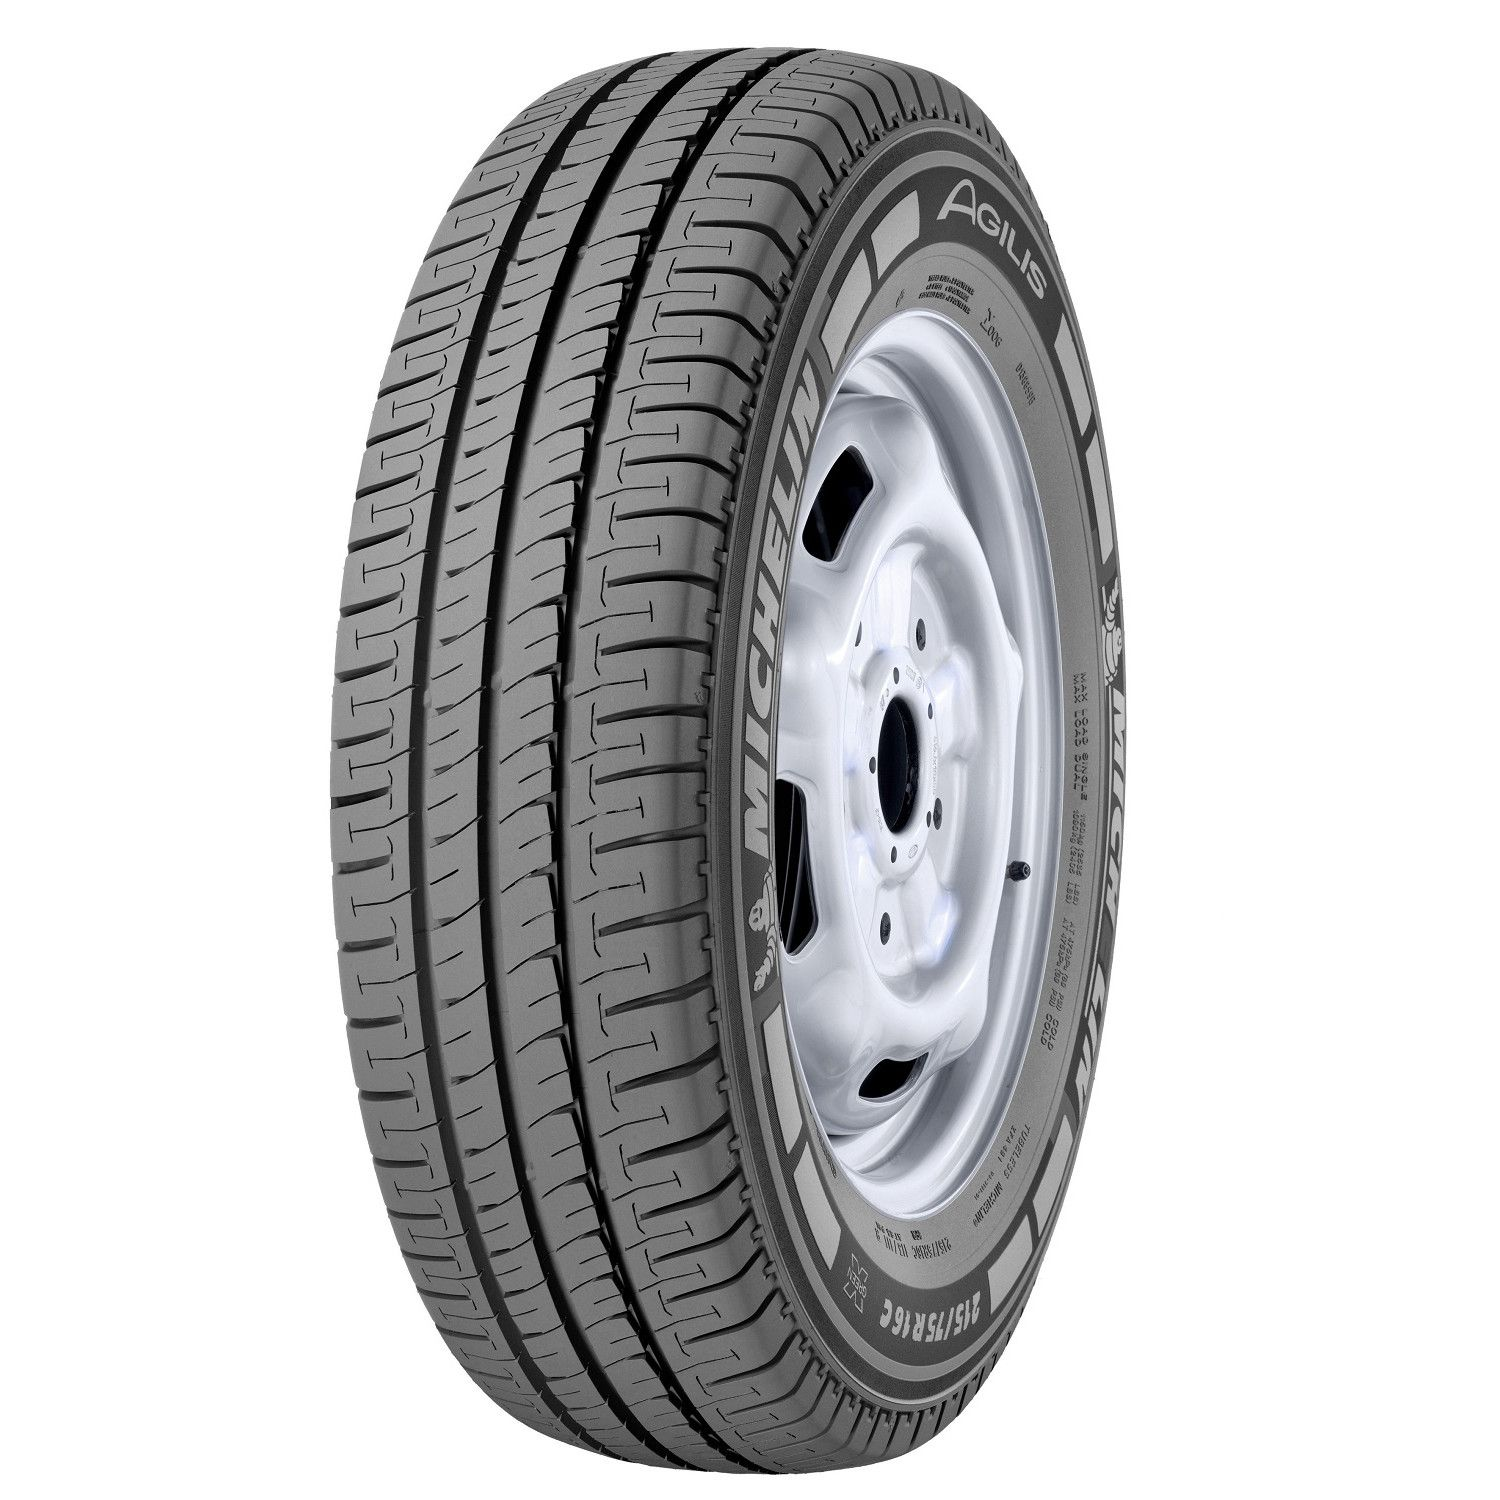 Anvelopa Trailer Michelin Agilis Plus 195/65R16 104R